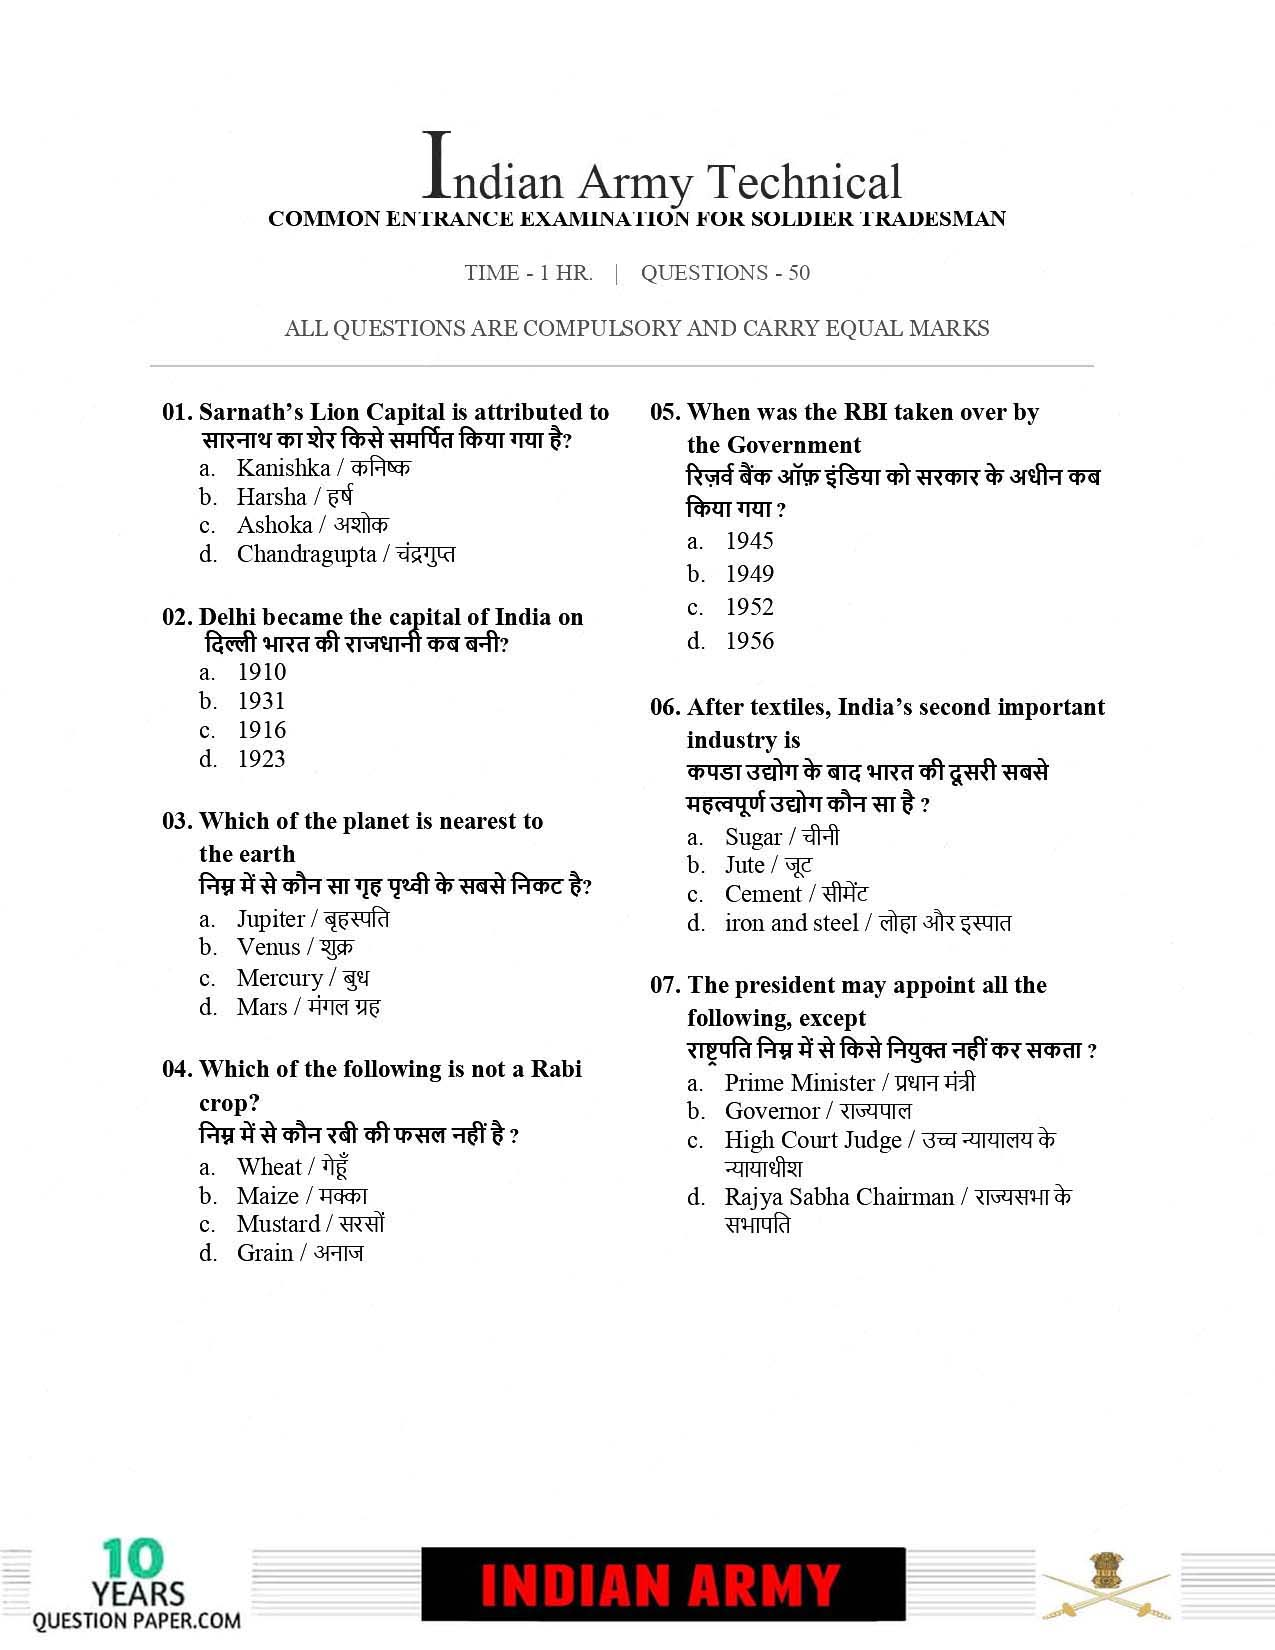 Indian Army Technical 2019 Question Paper